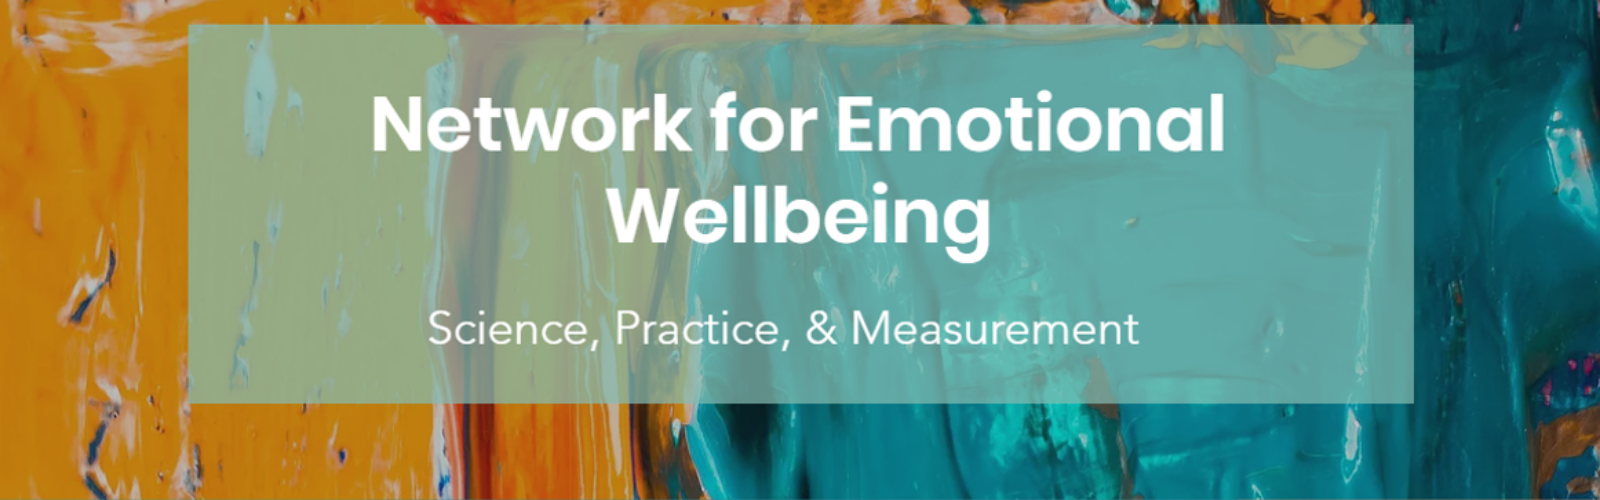 Network for Emotional Well-being